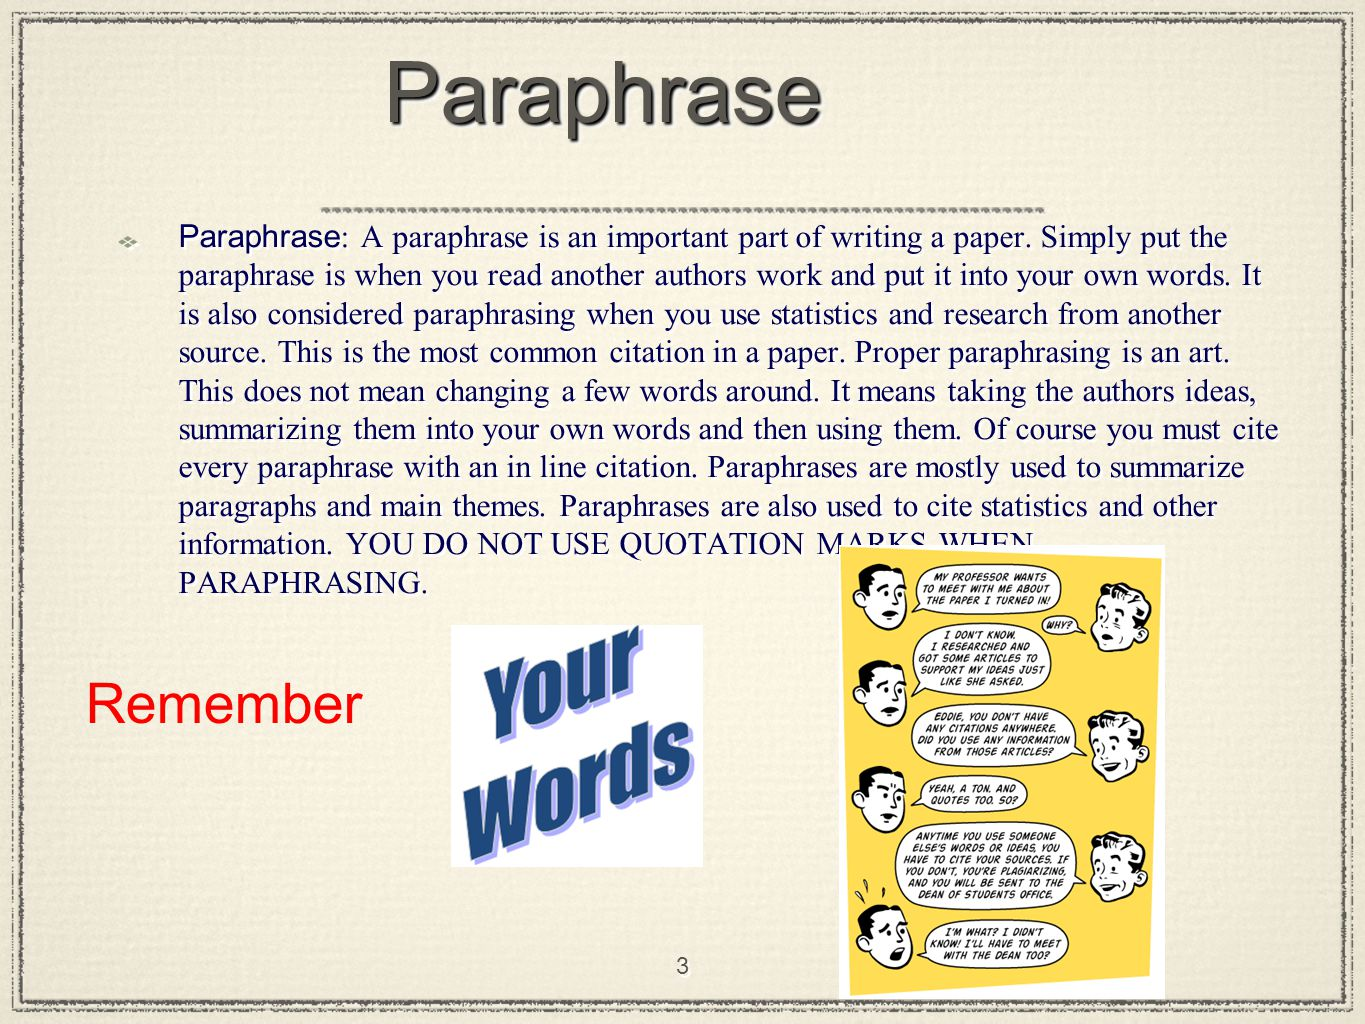 importance of paraphrasing com home instruction schools compiles search engine links and other homework help sites so users needn t go far to secure all their homework answers